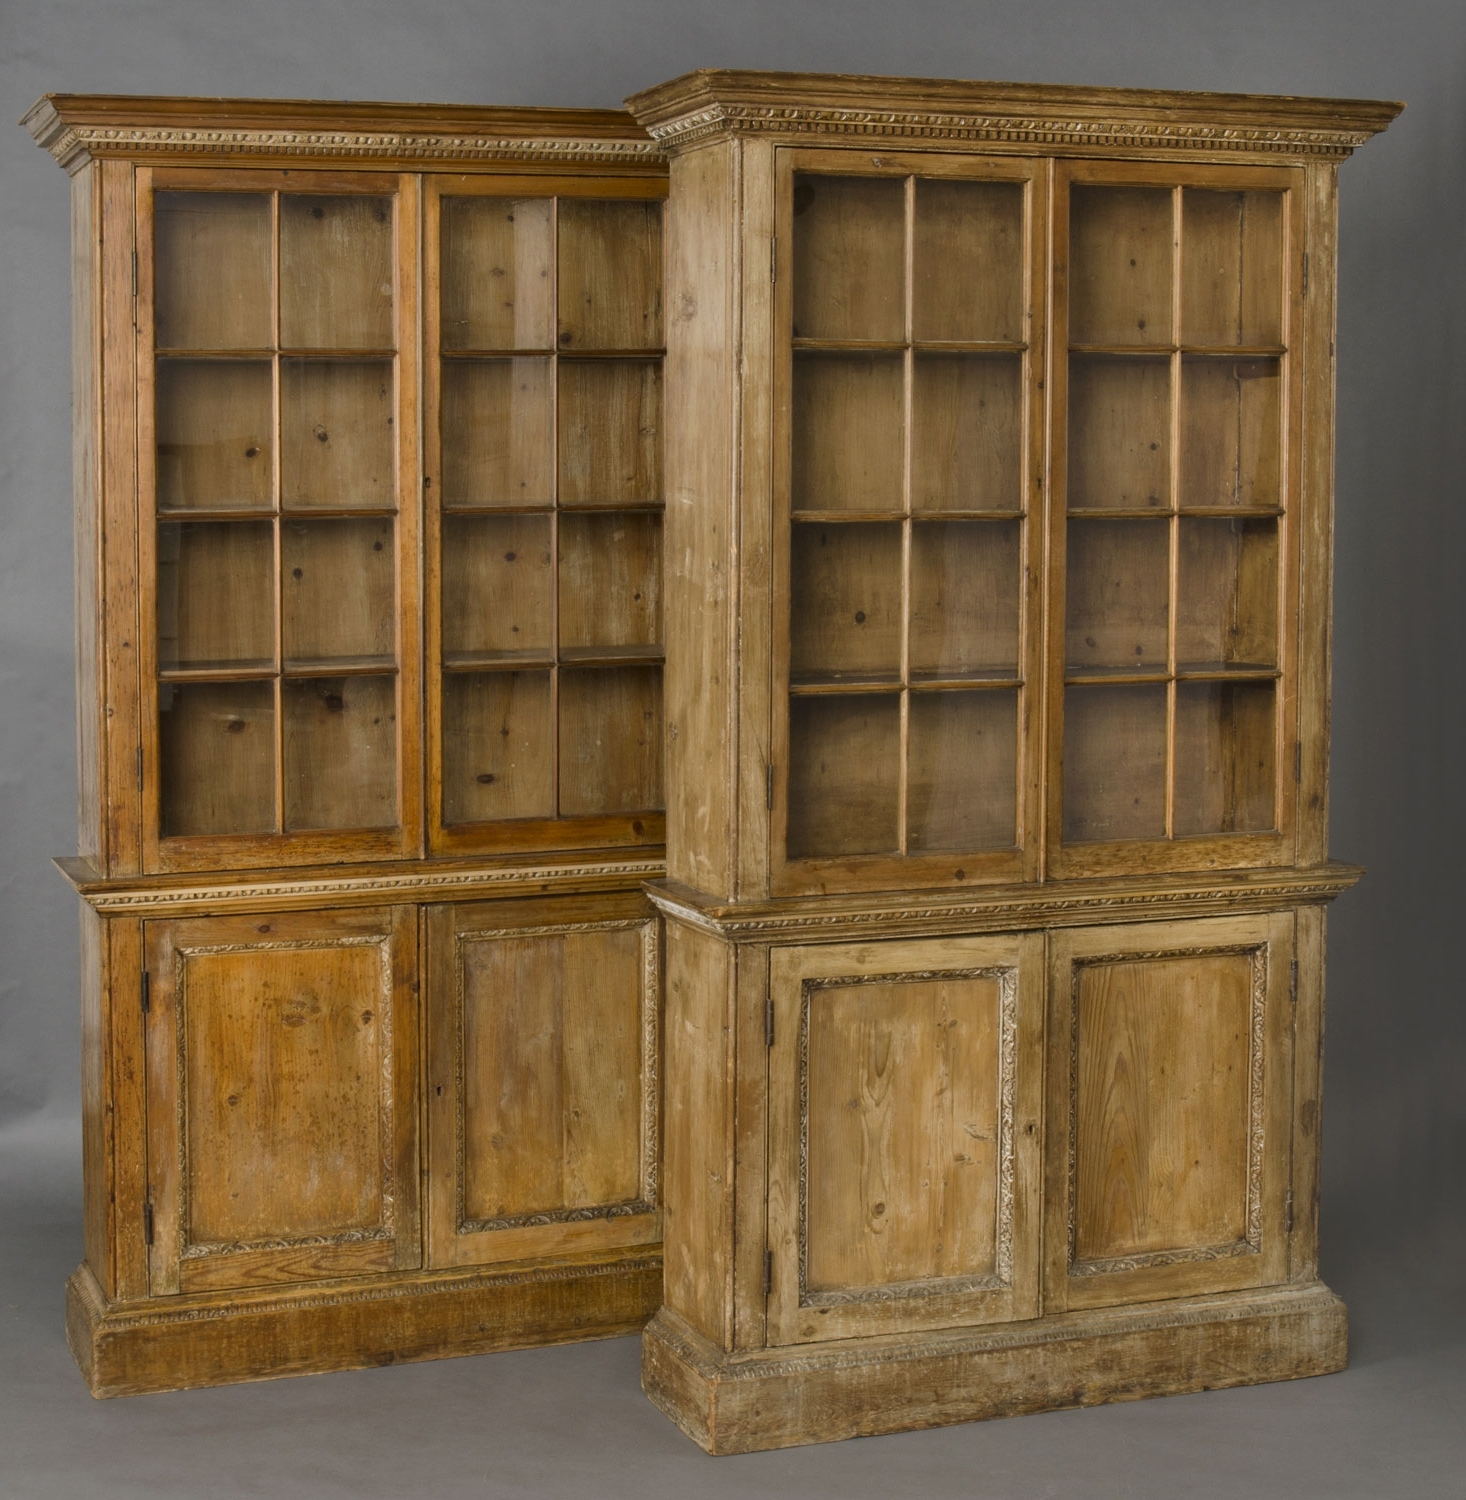 Product » Pair Pine Glazed Bookcases With Regard To Best And Newest Pine Bookcases (View 13 of 15)